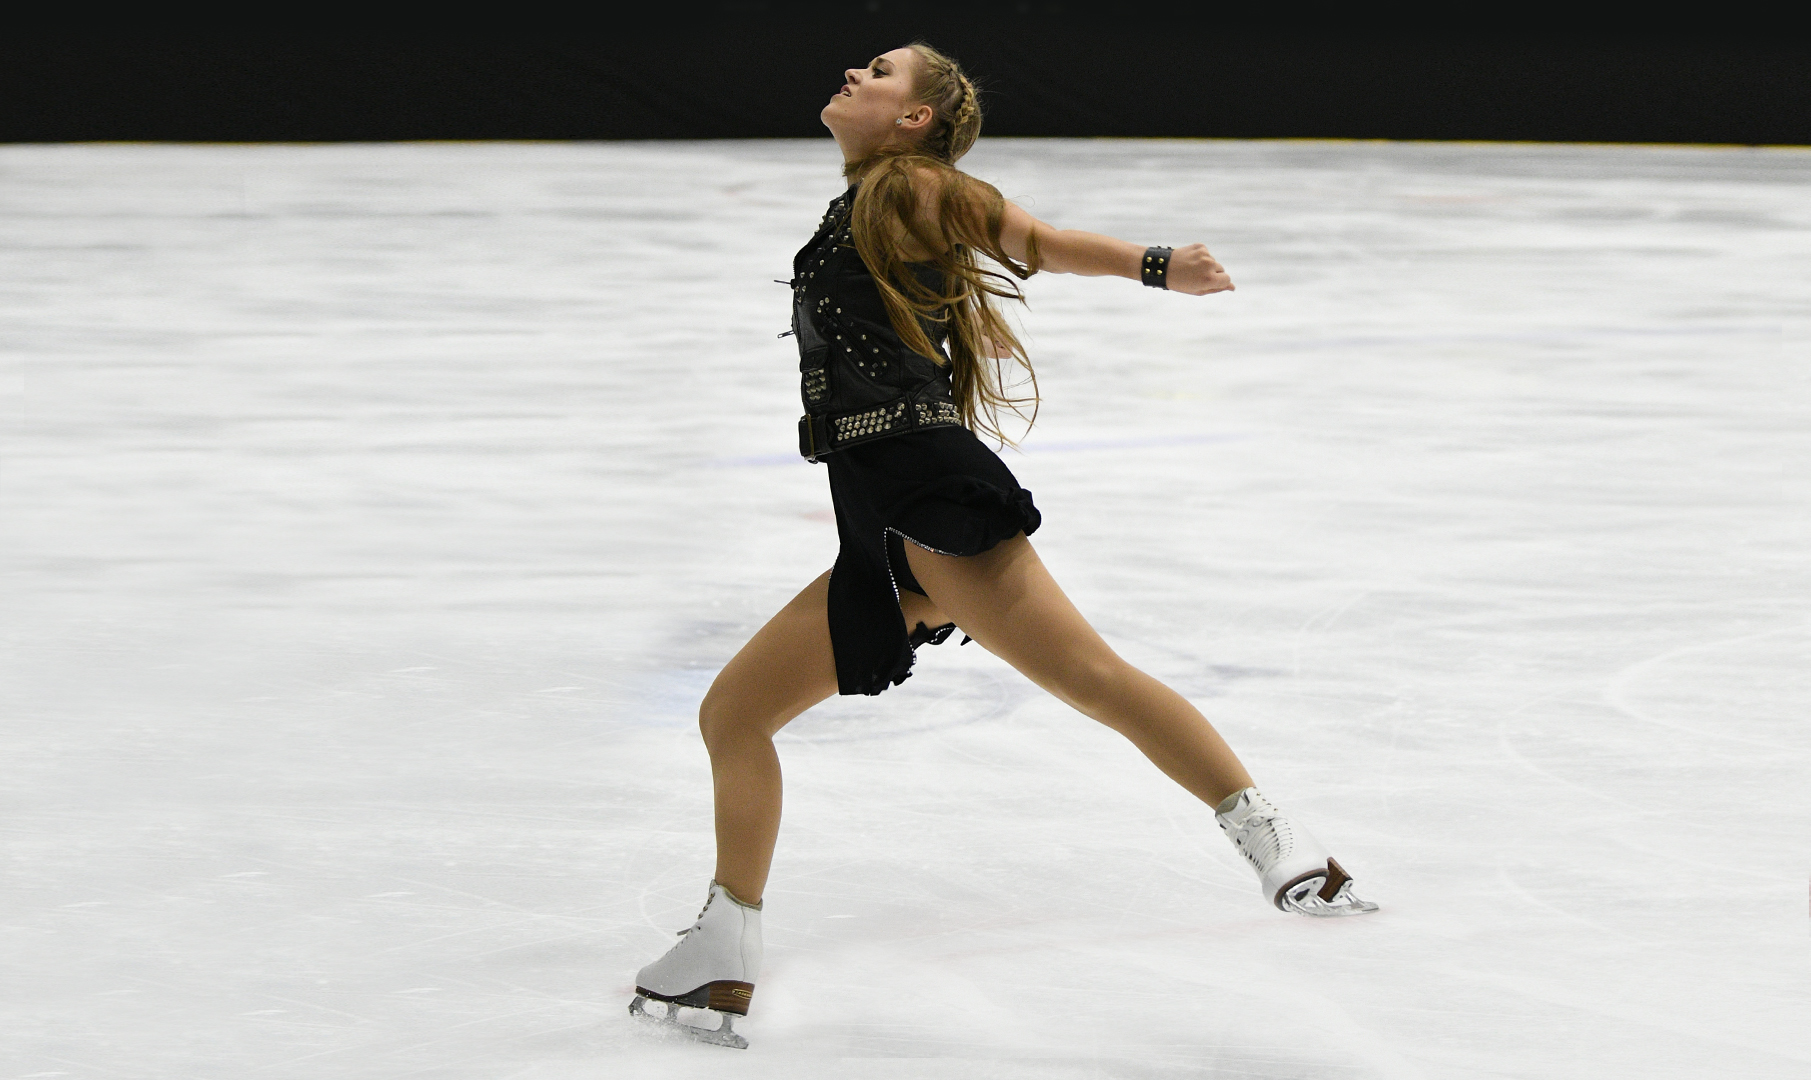 Solo dance skater performs in front of a crowd.